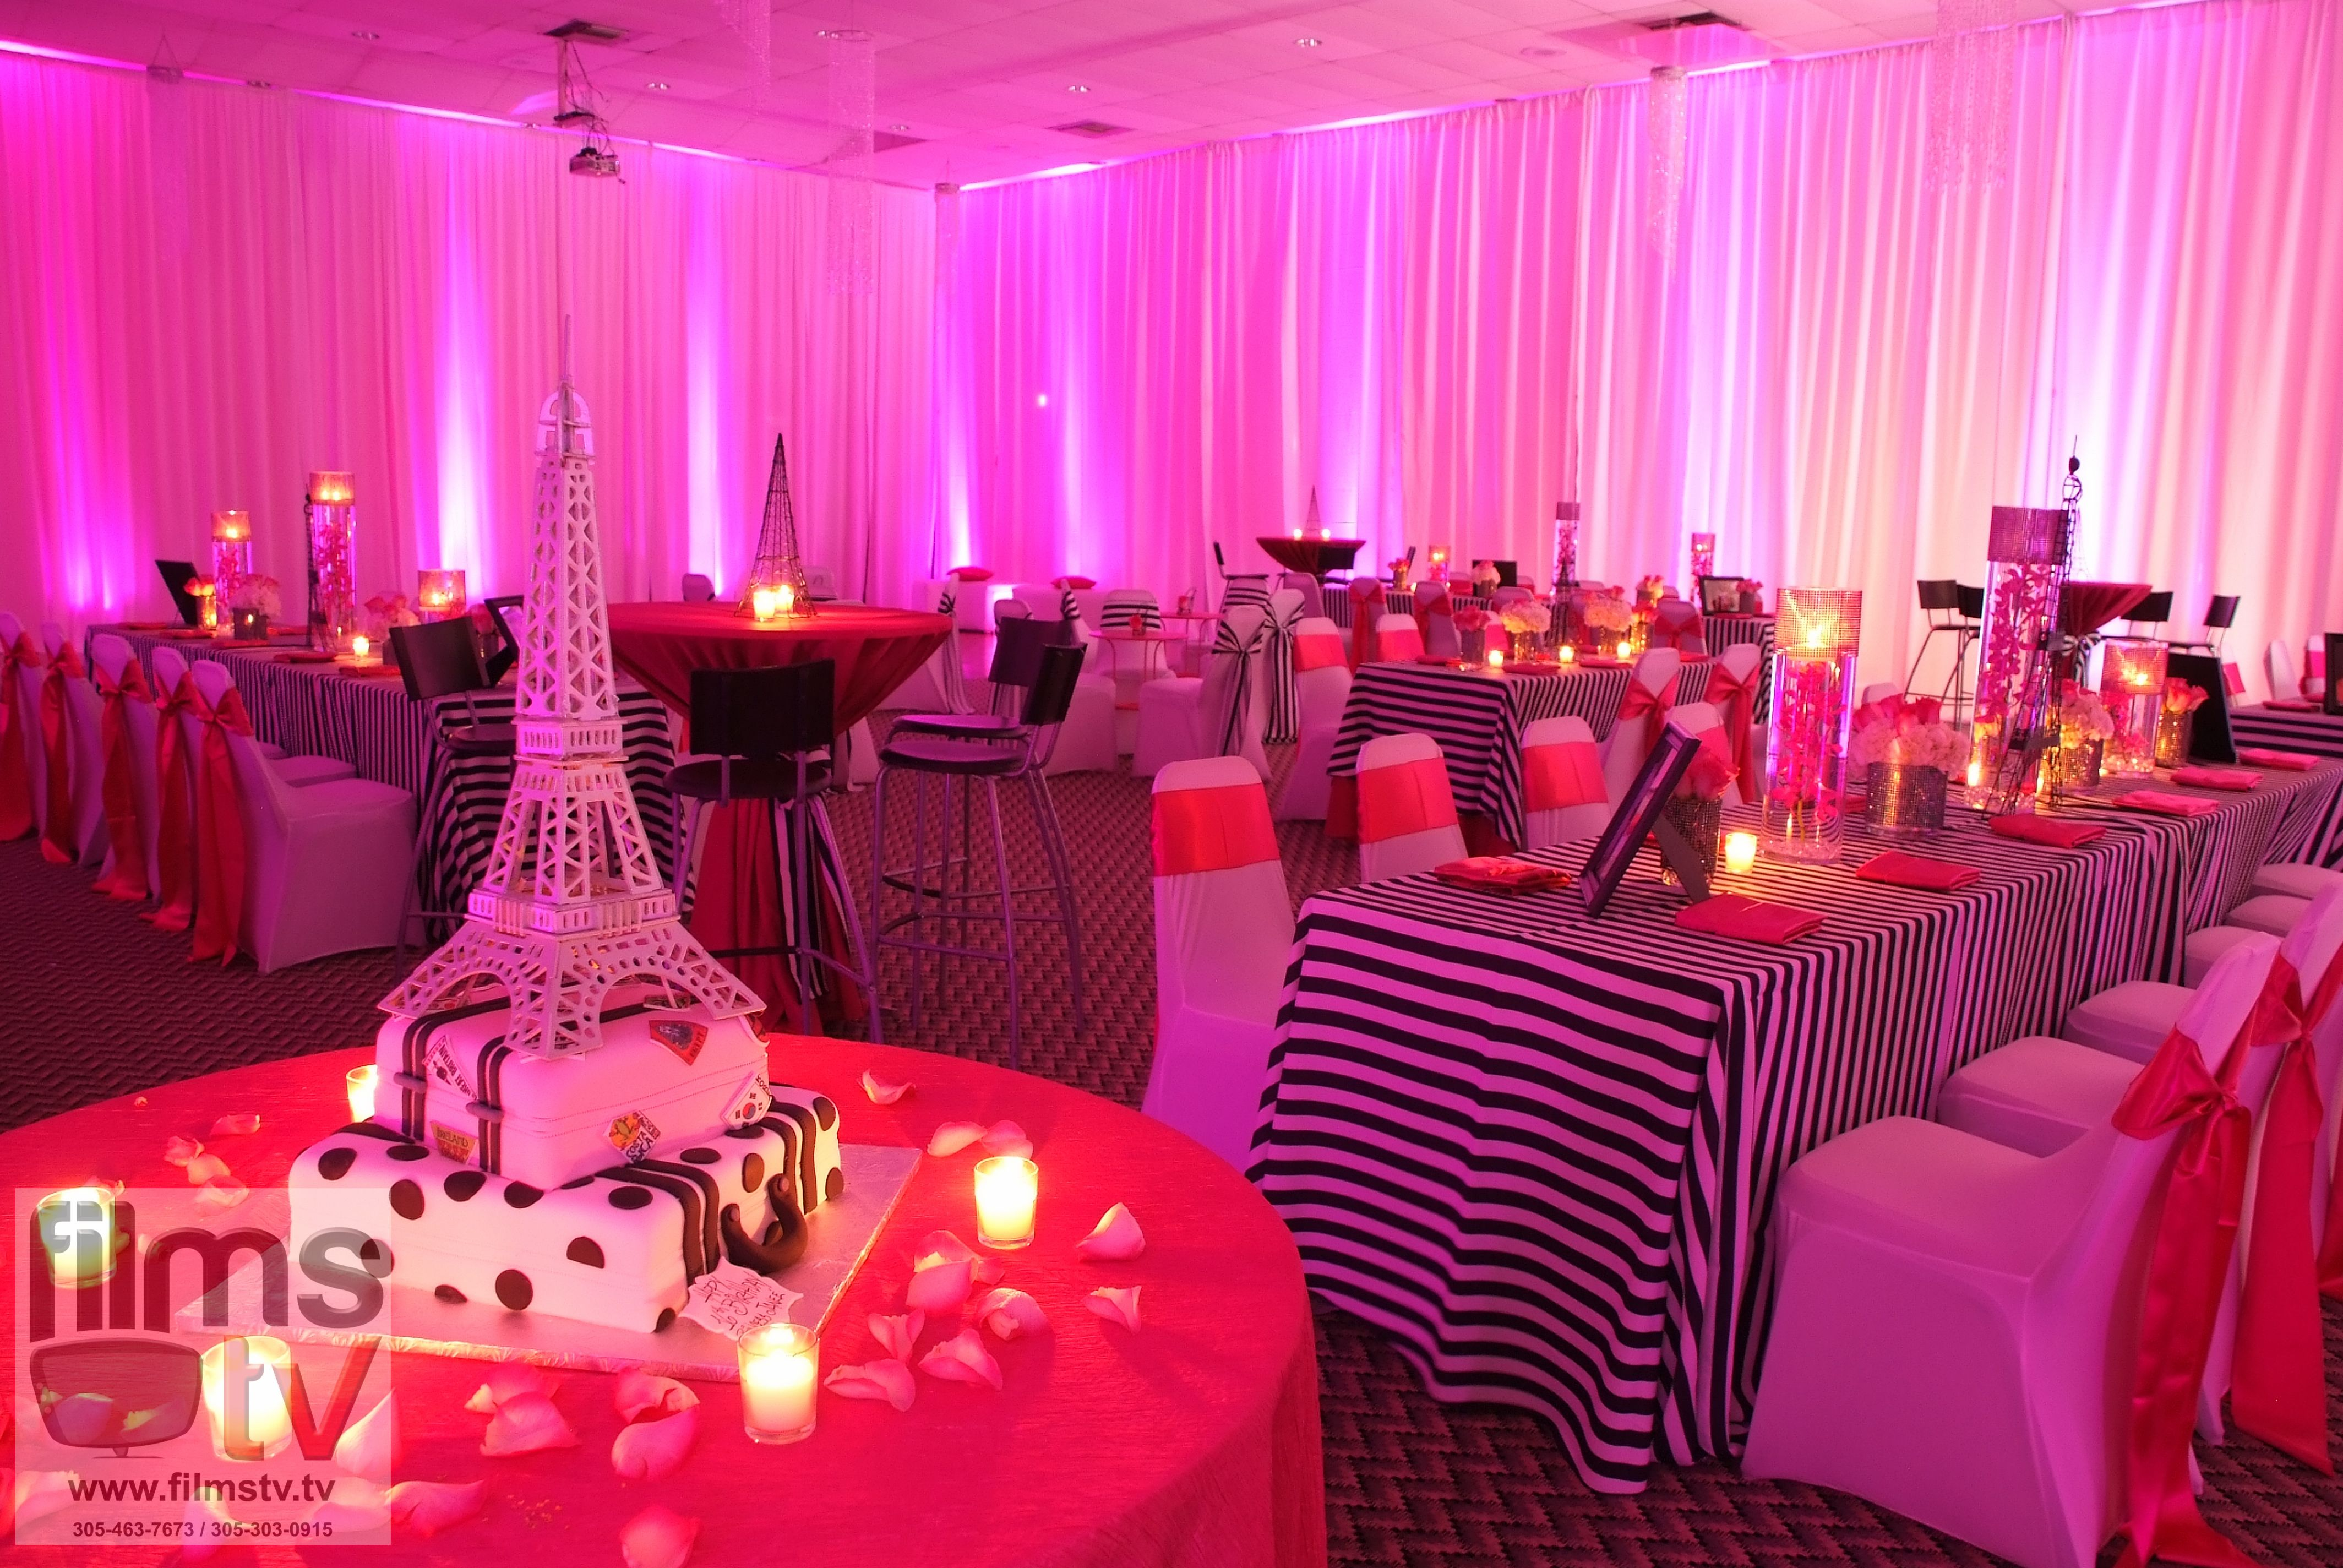 A night in paris paris themed sweet sixteen www for Paris themed decor